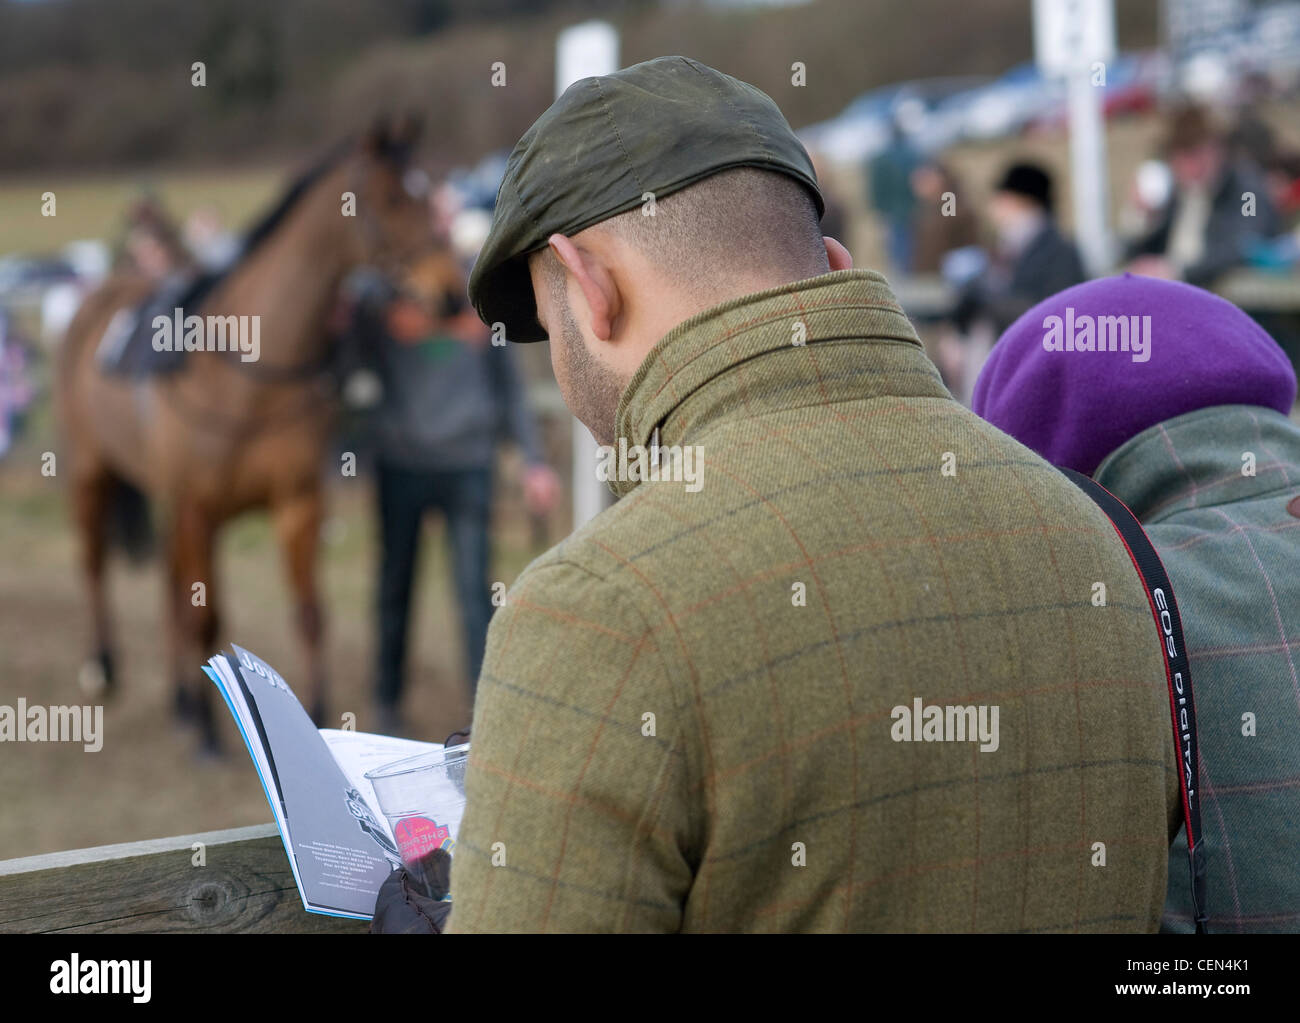 Un parieur lit la carte de la race avant le Mens Shepherd Neame course ouverte à la chasse au sud-est de Point Photo Stock